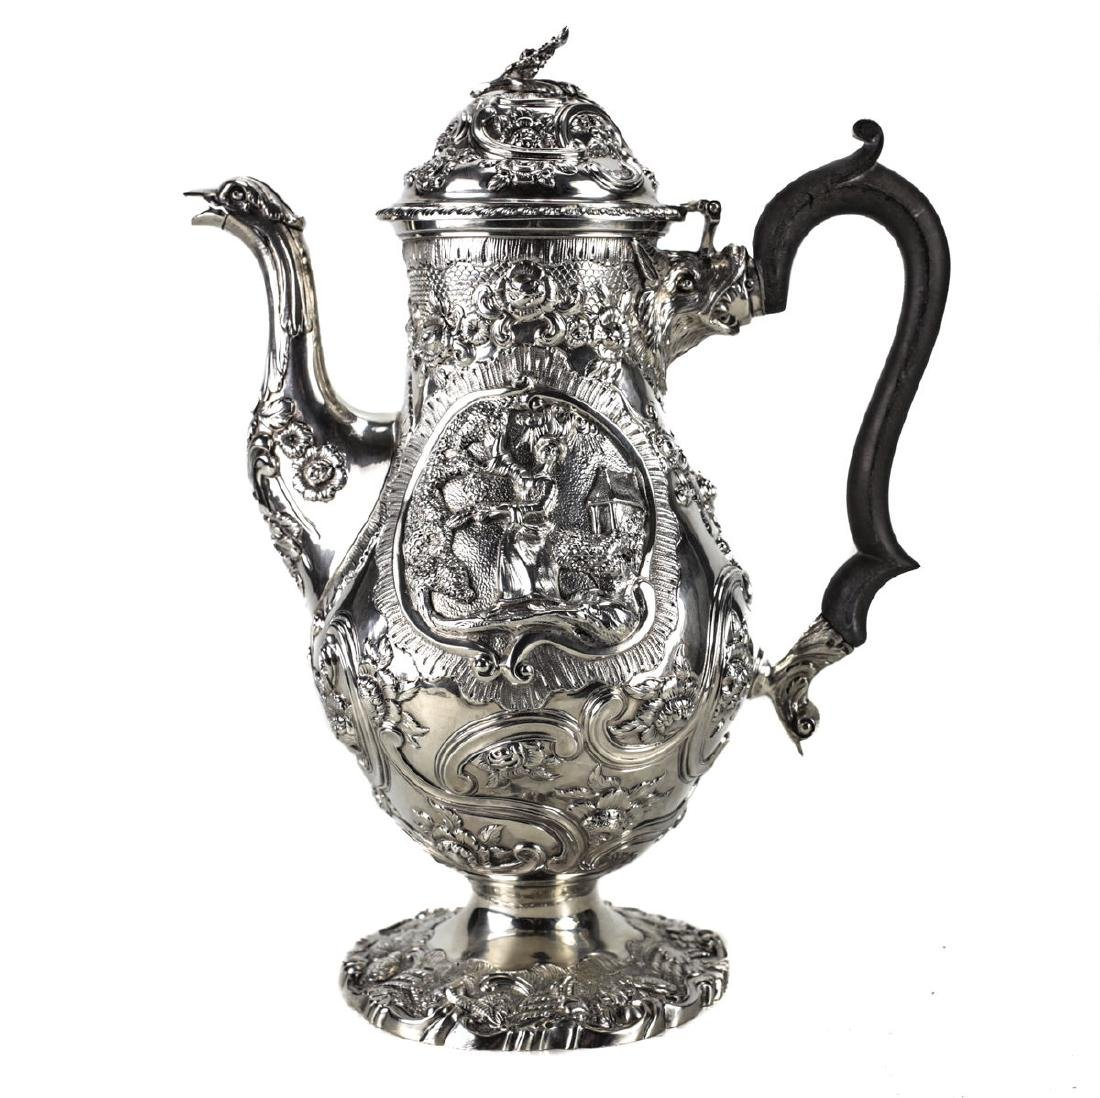 A Regency Sterling Silver Coffee Pot by William